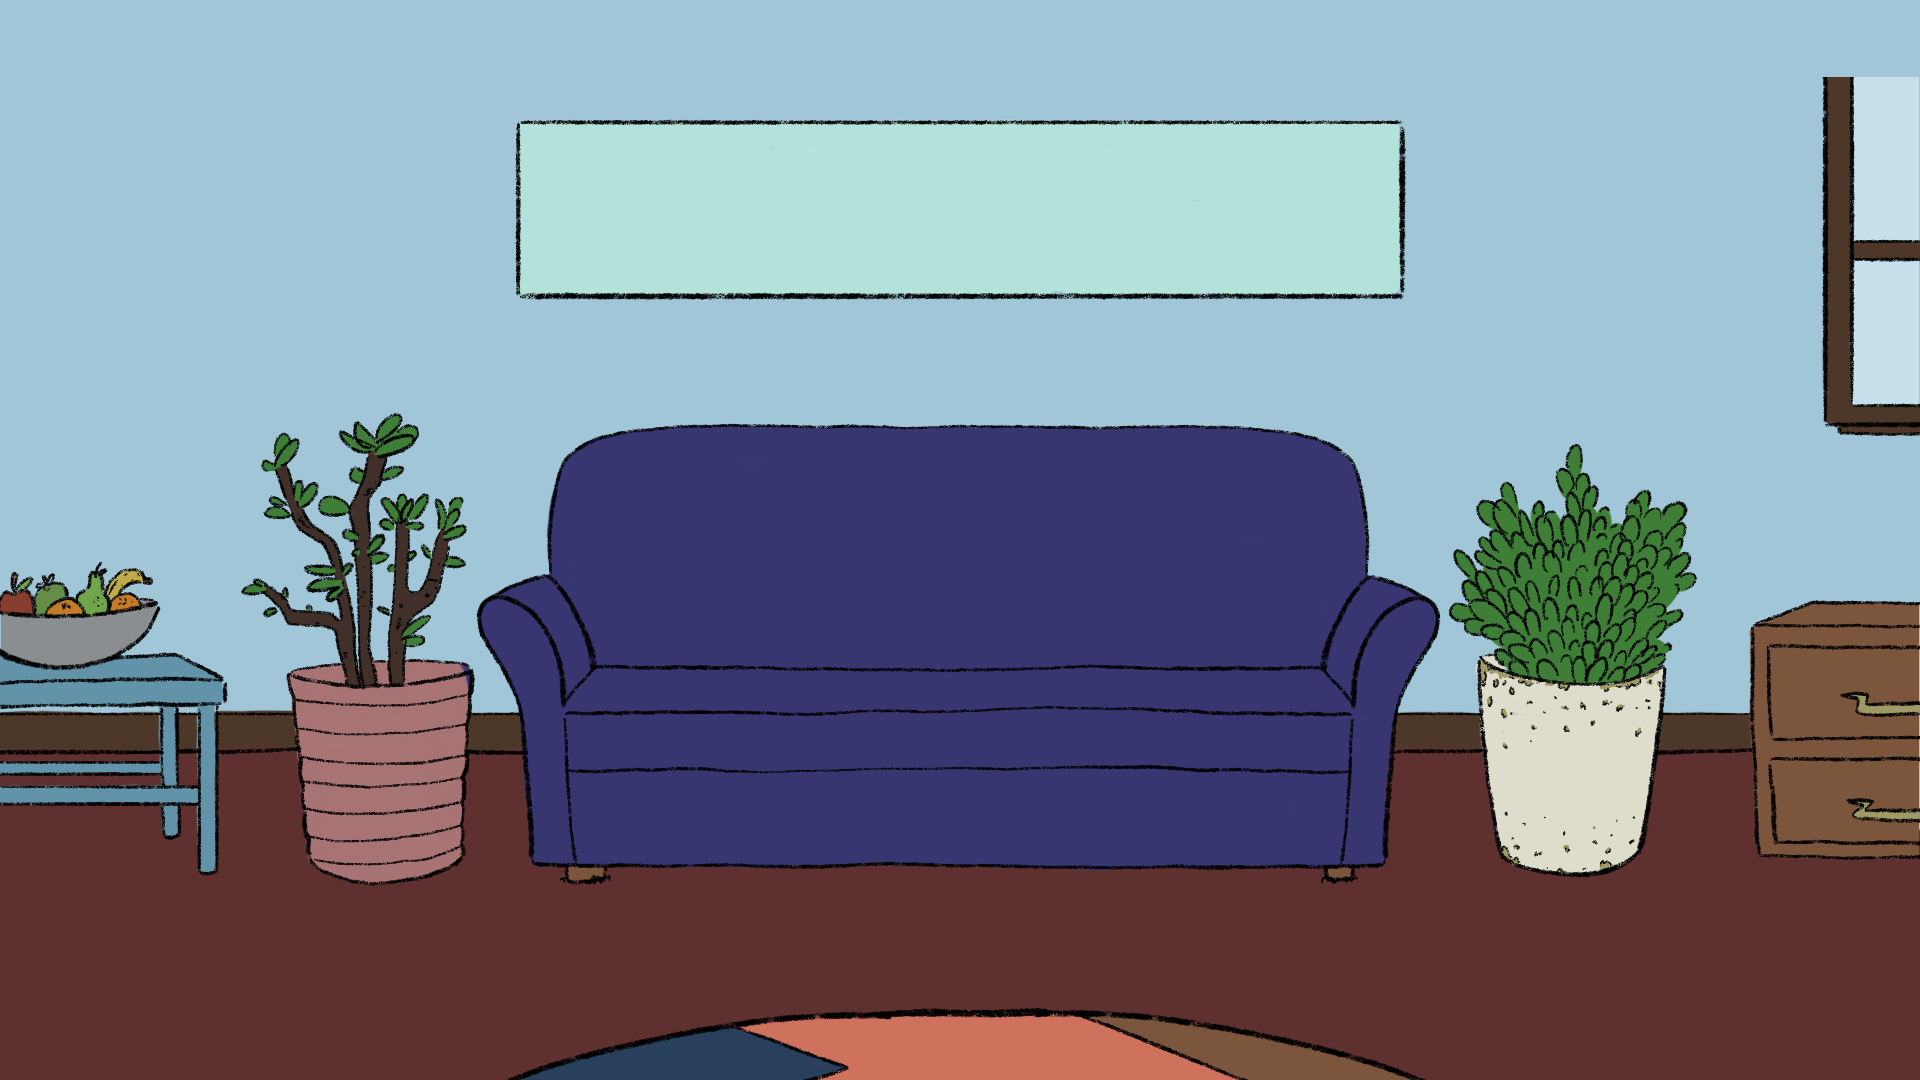 A version of the background with color.